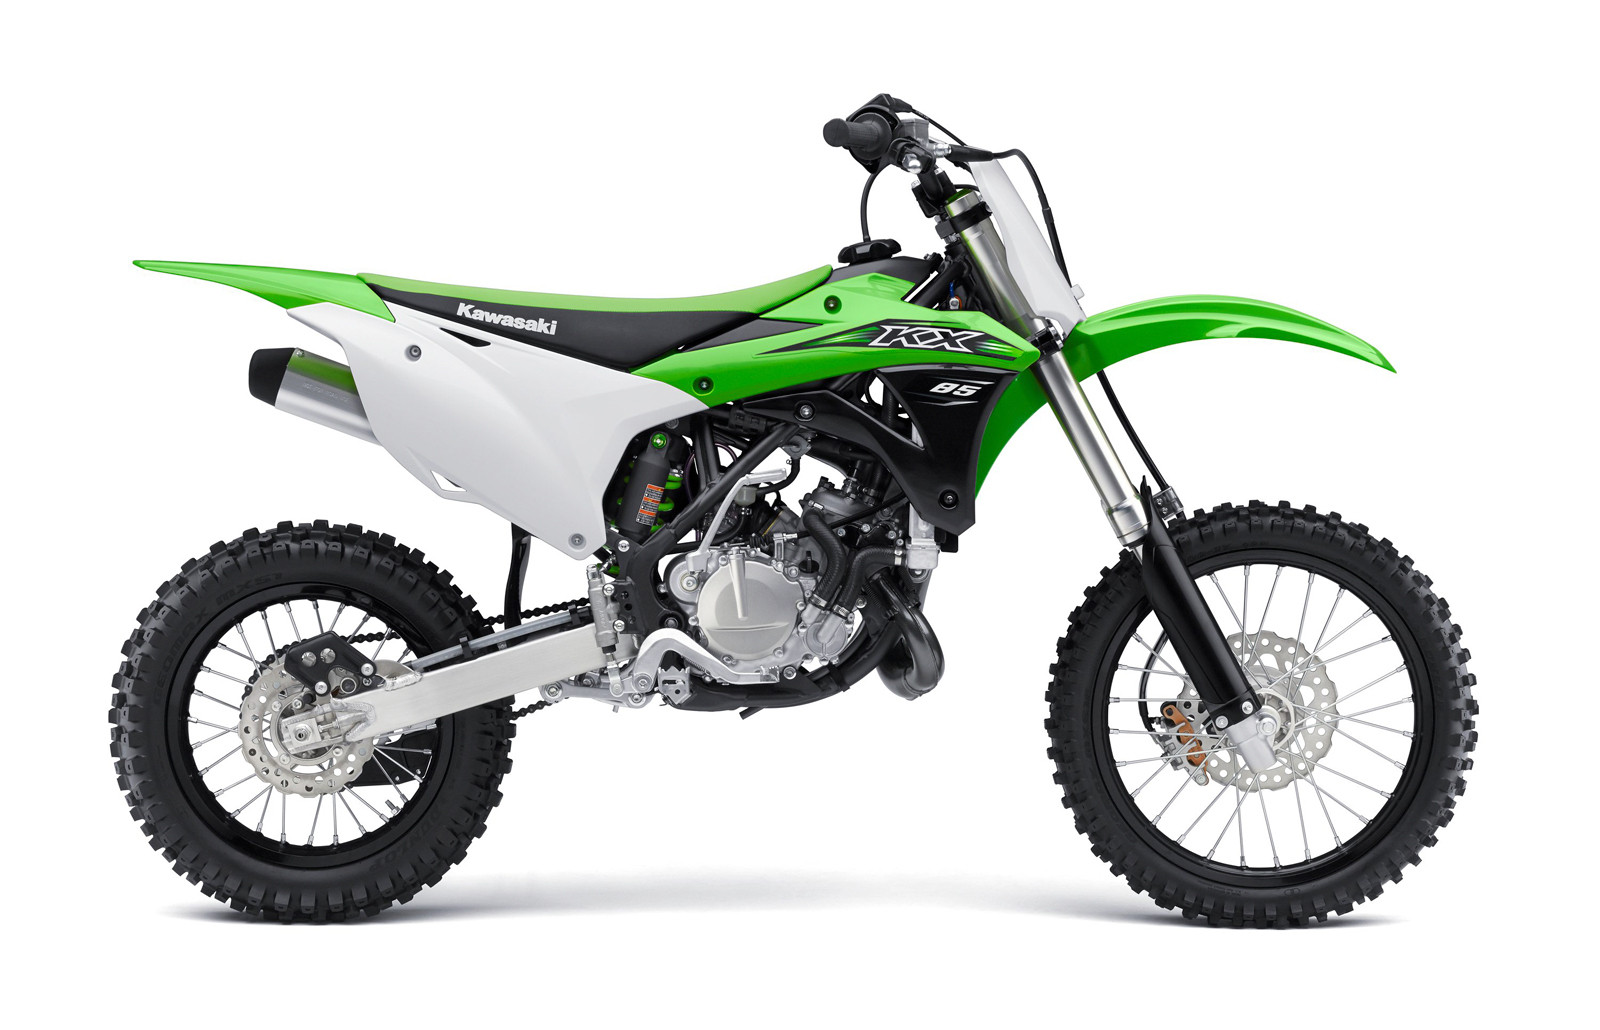 2016 kawasaki kx85 first look 2016 kawasaki kx models motocross pictures vital mx. Black Bedroom Furniture Sets. Home Design Ideas